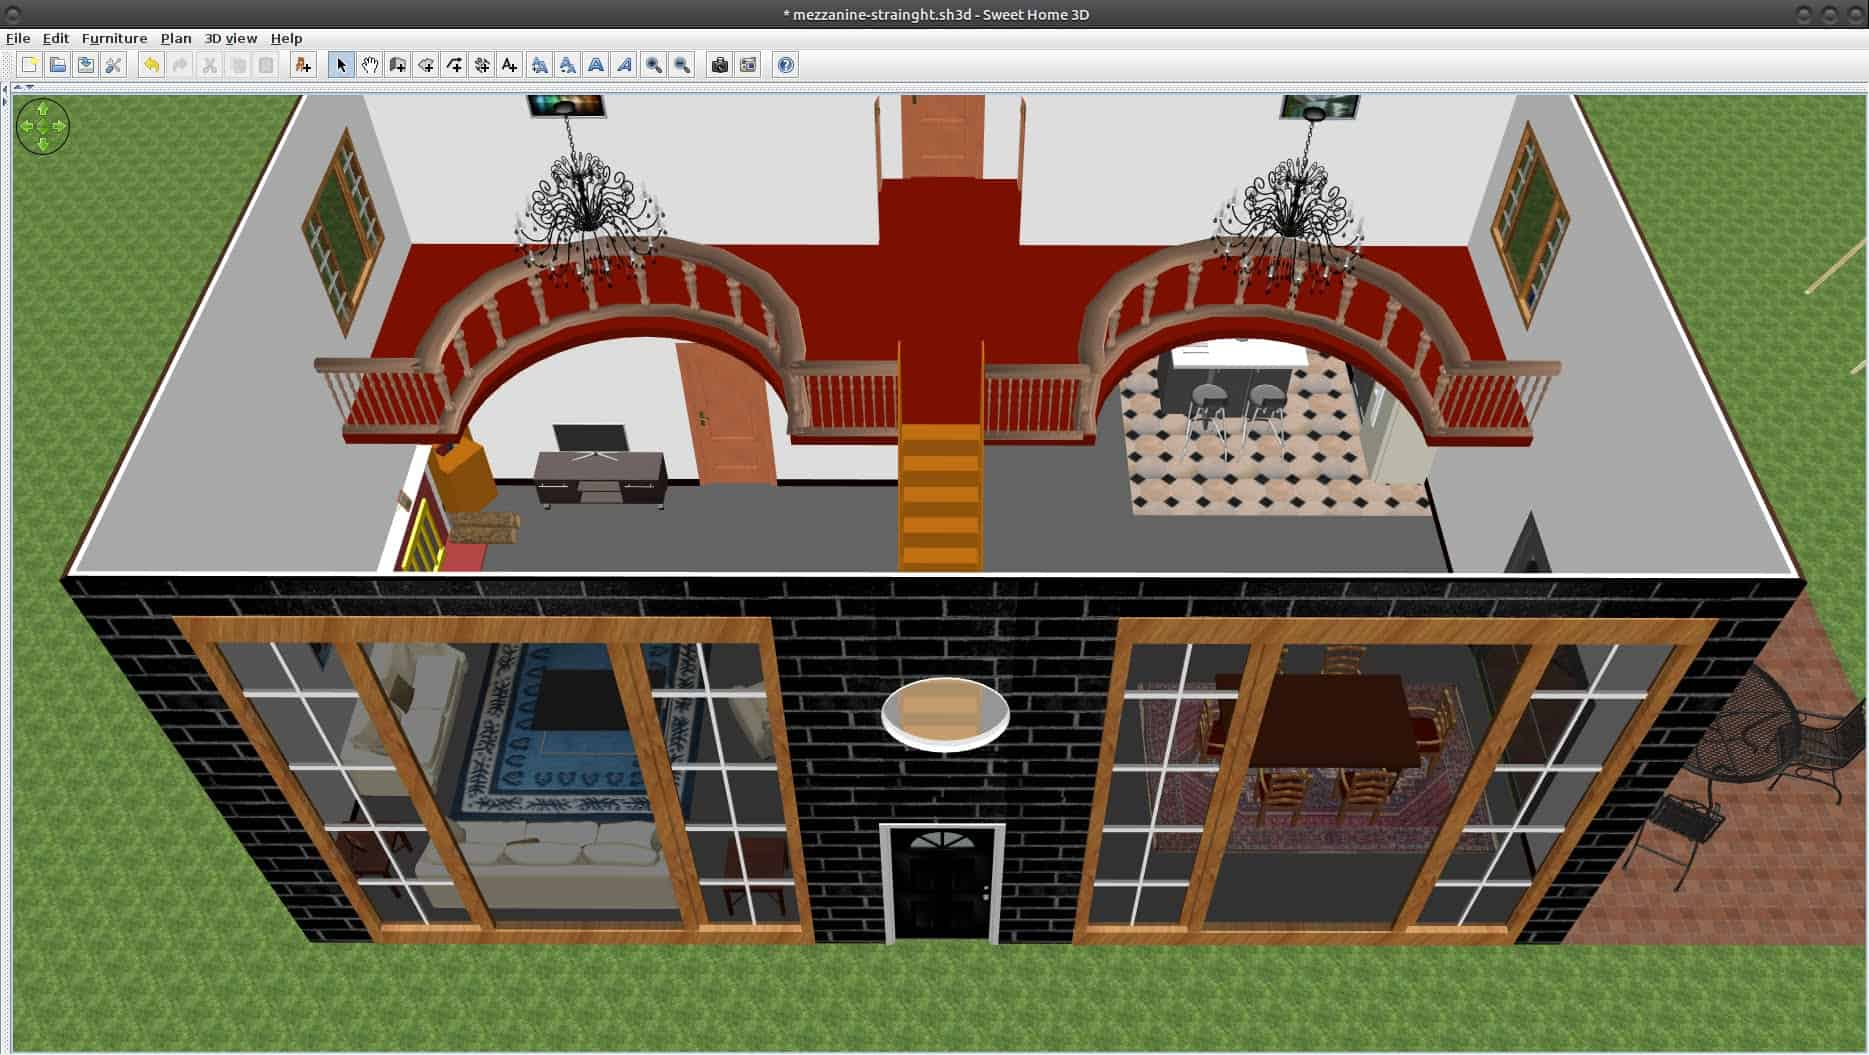 Sweet Home 3D – home design software